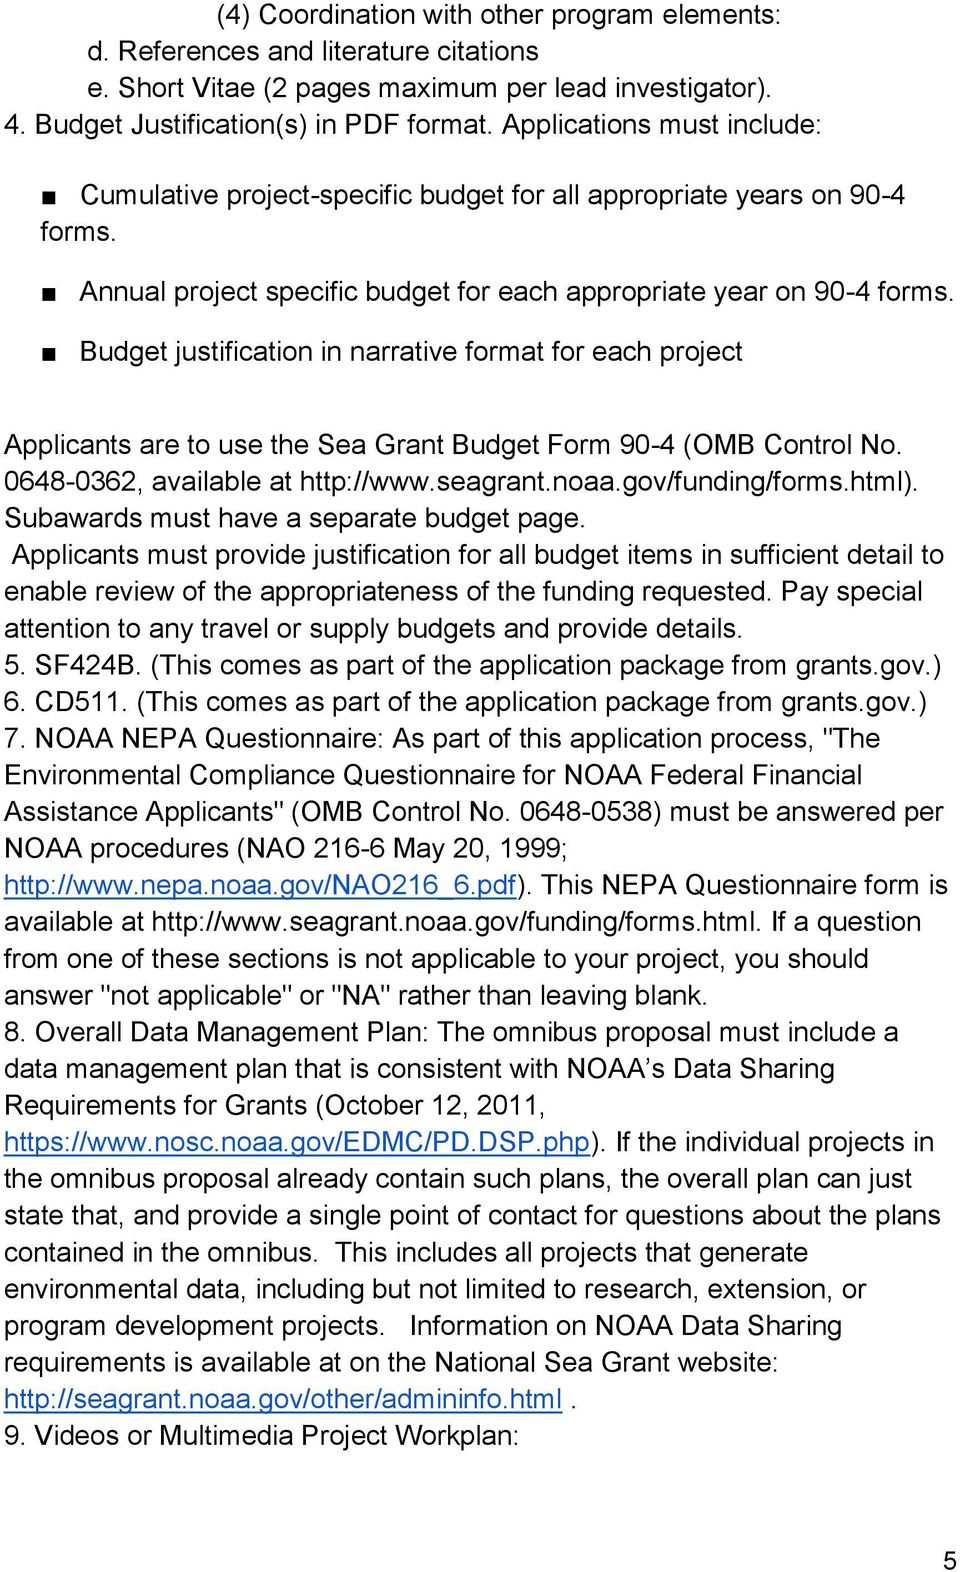 Budget justification in narrative format for each project Applicants are to use the Sea Grant Budget Form 90-4 (OMB Control No. 0648-0362, available at http://www.seagrant.noaa.gov/funding/forms.